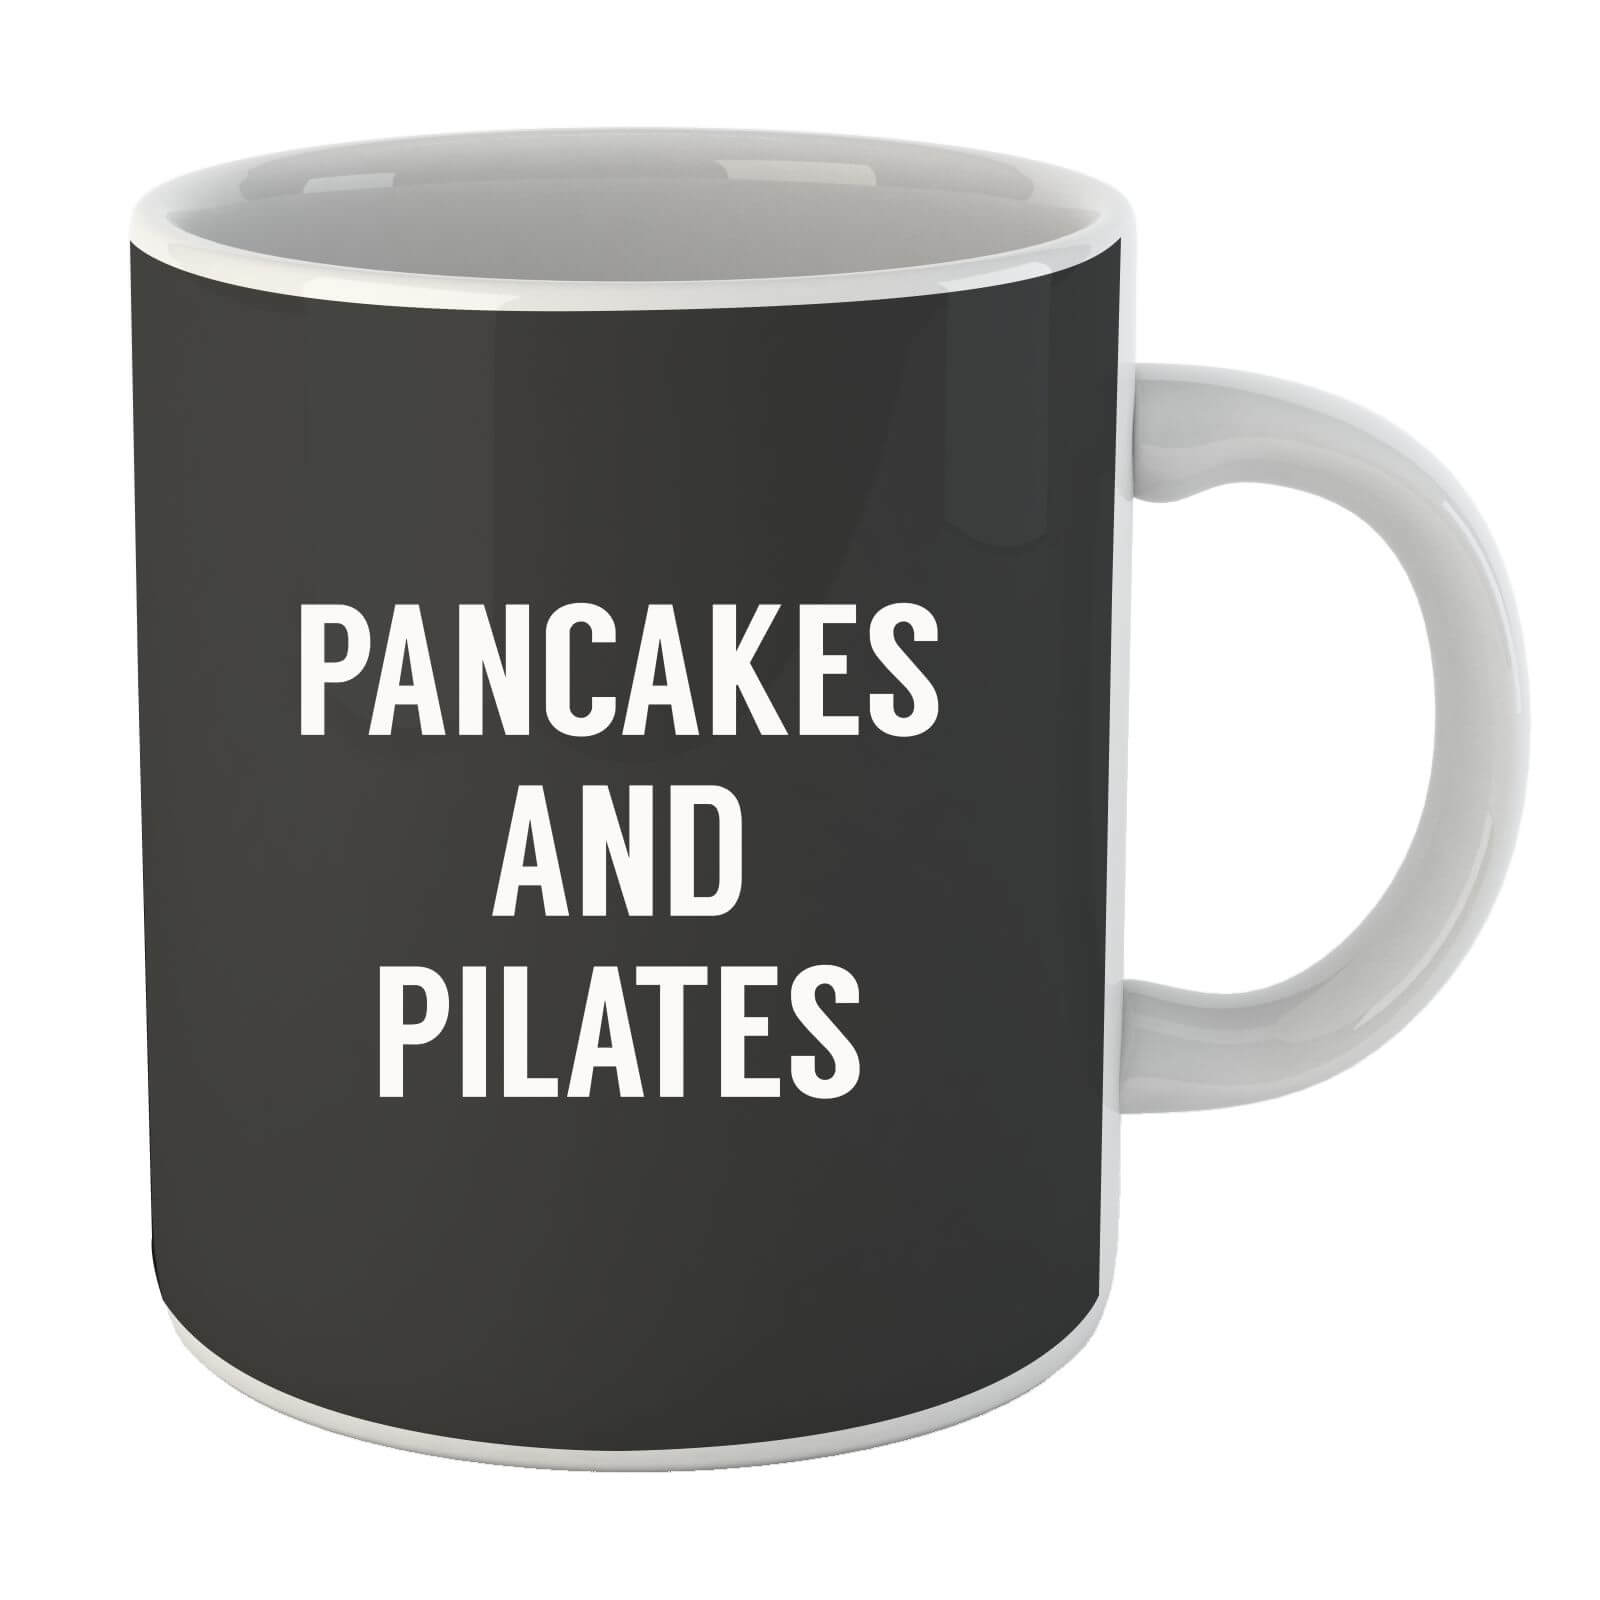 Pancakes and Pilates Mug